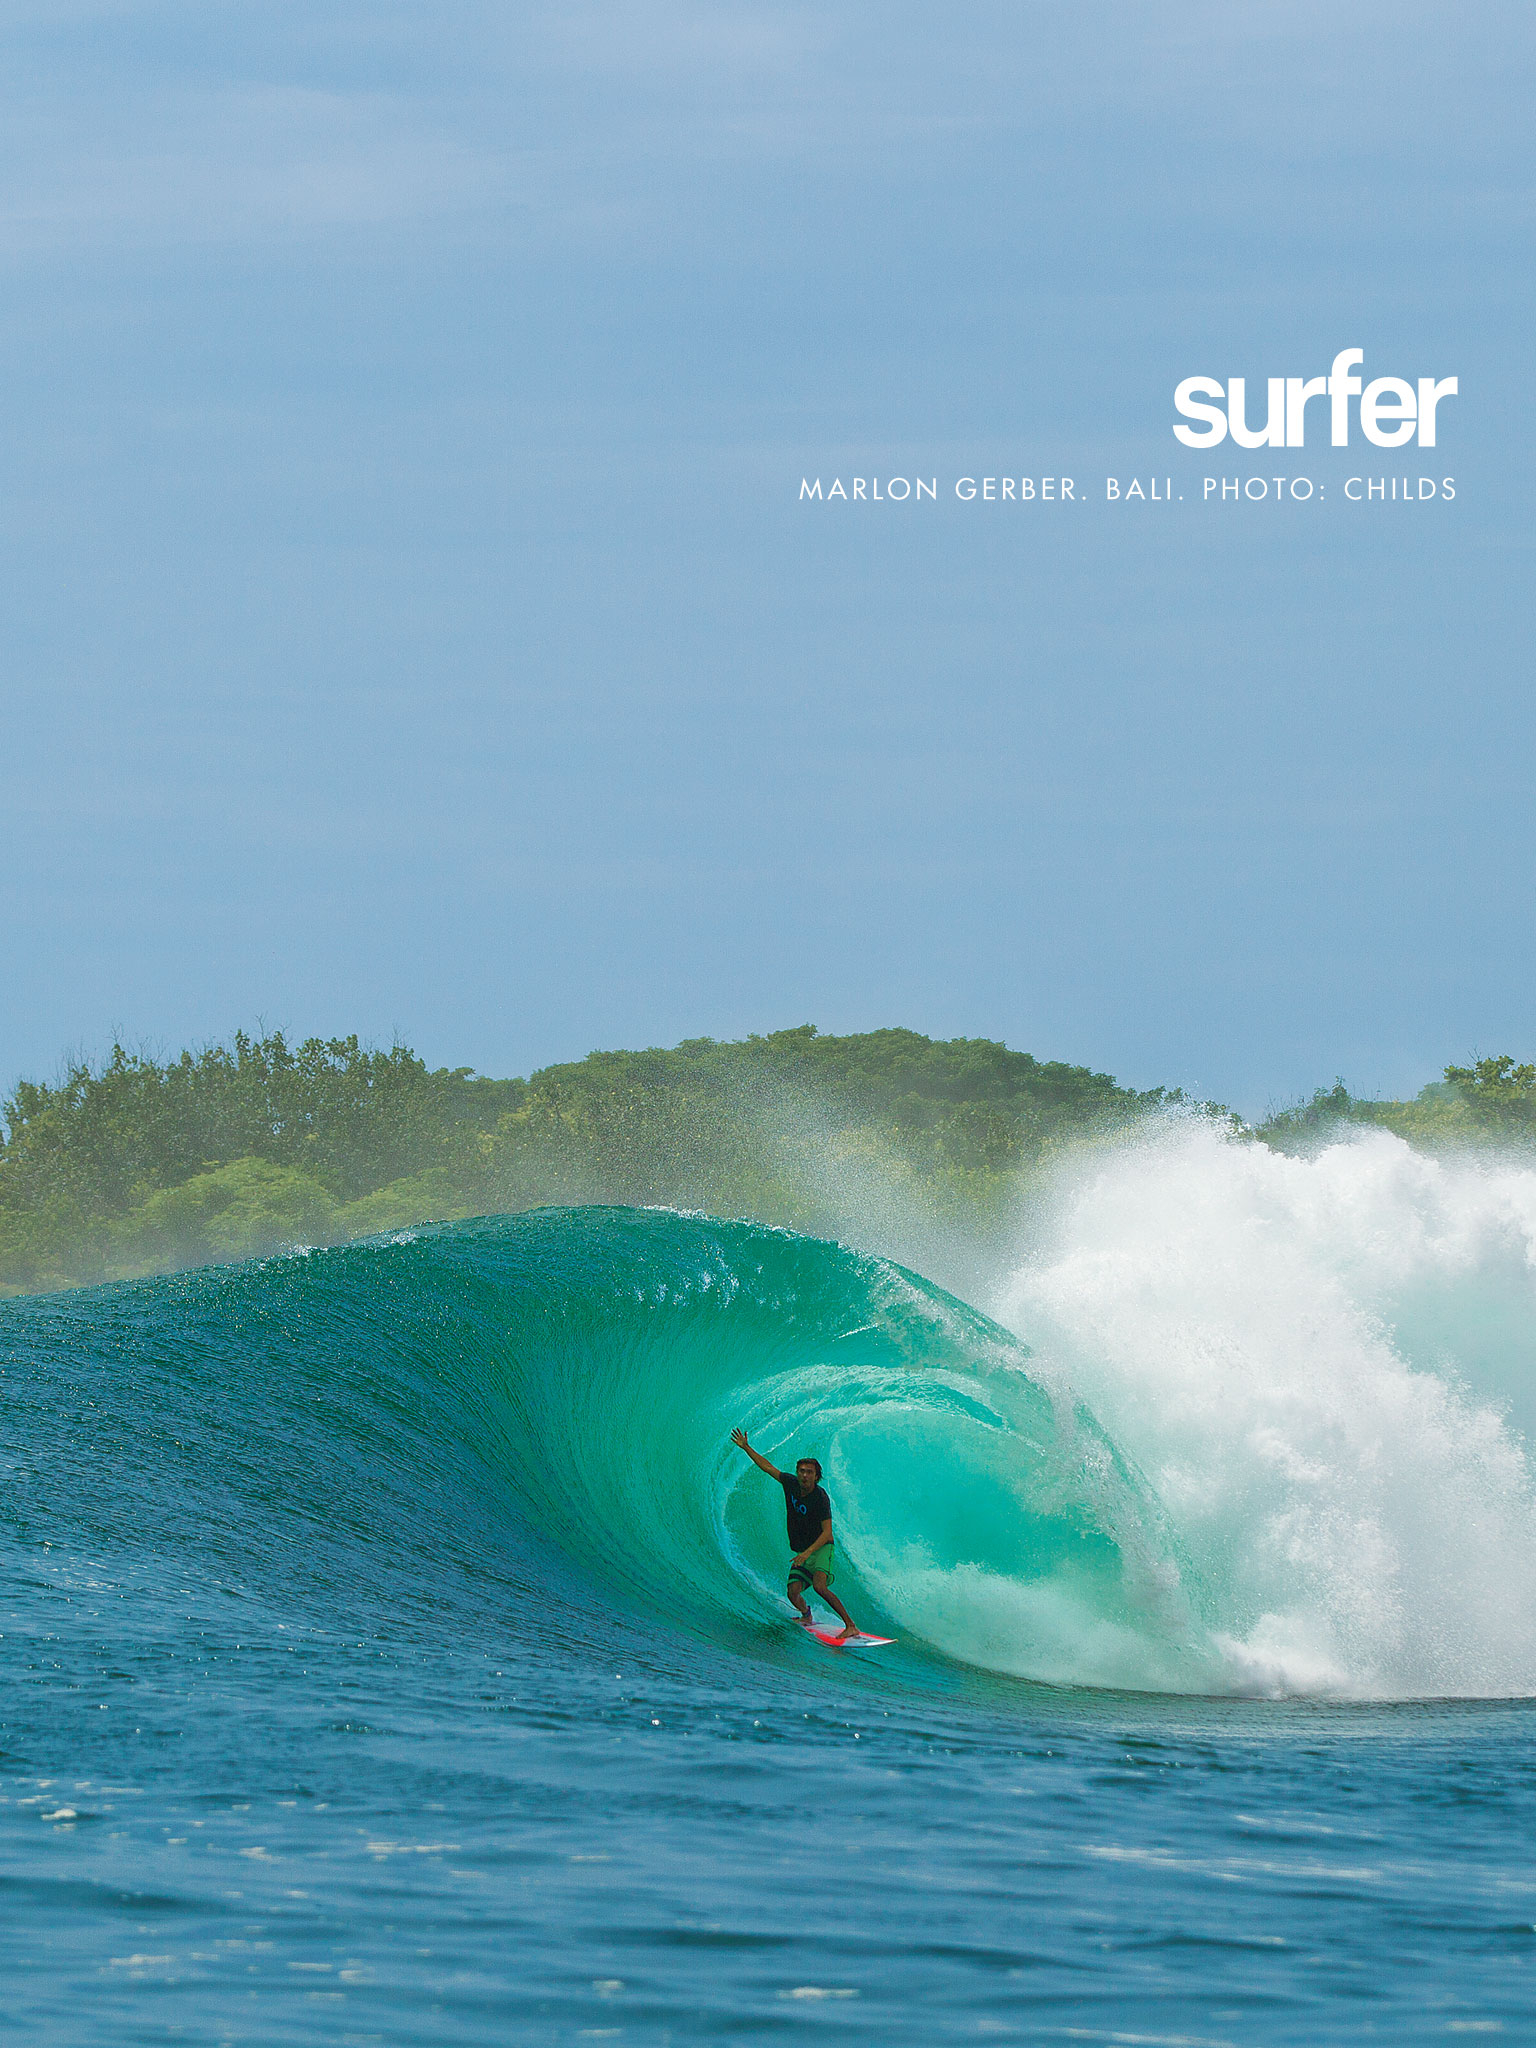 Free Download Wallpapers Surfer Magazine Ipad Wallpaper